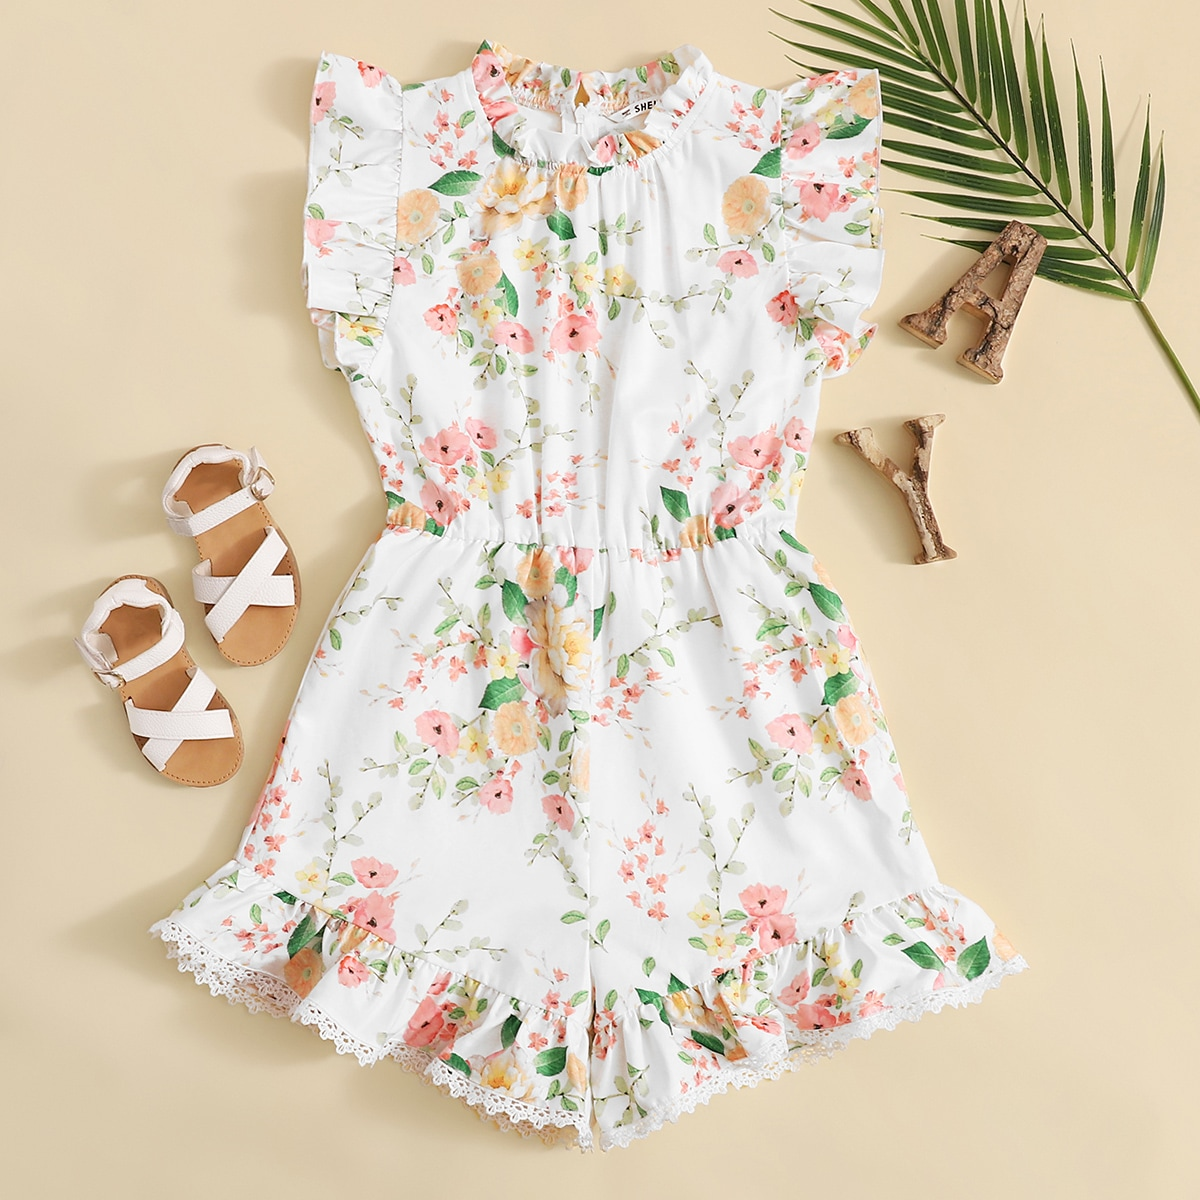 SHEIN / Girls Frilled Neck Ruffle Armhole Lace Hem Floral Romper